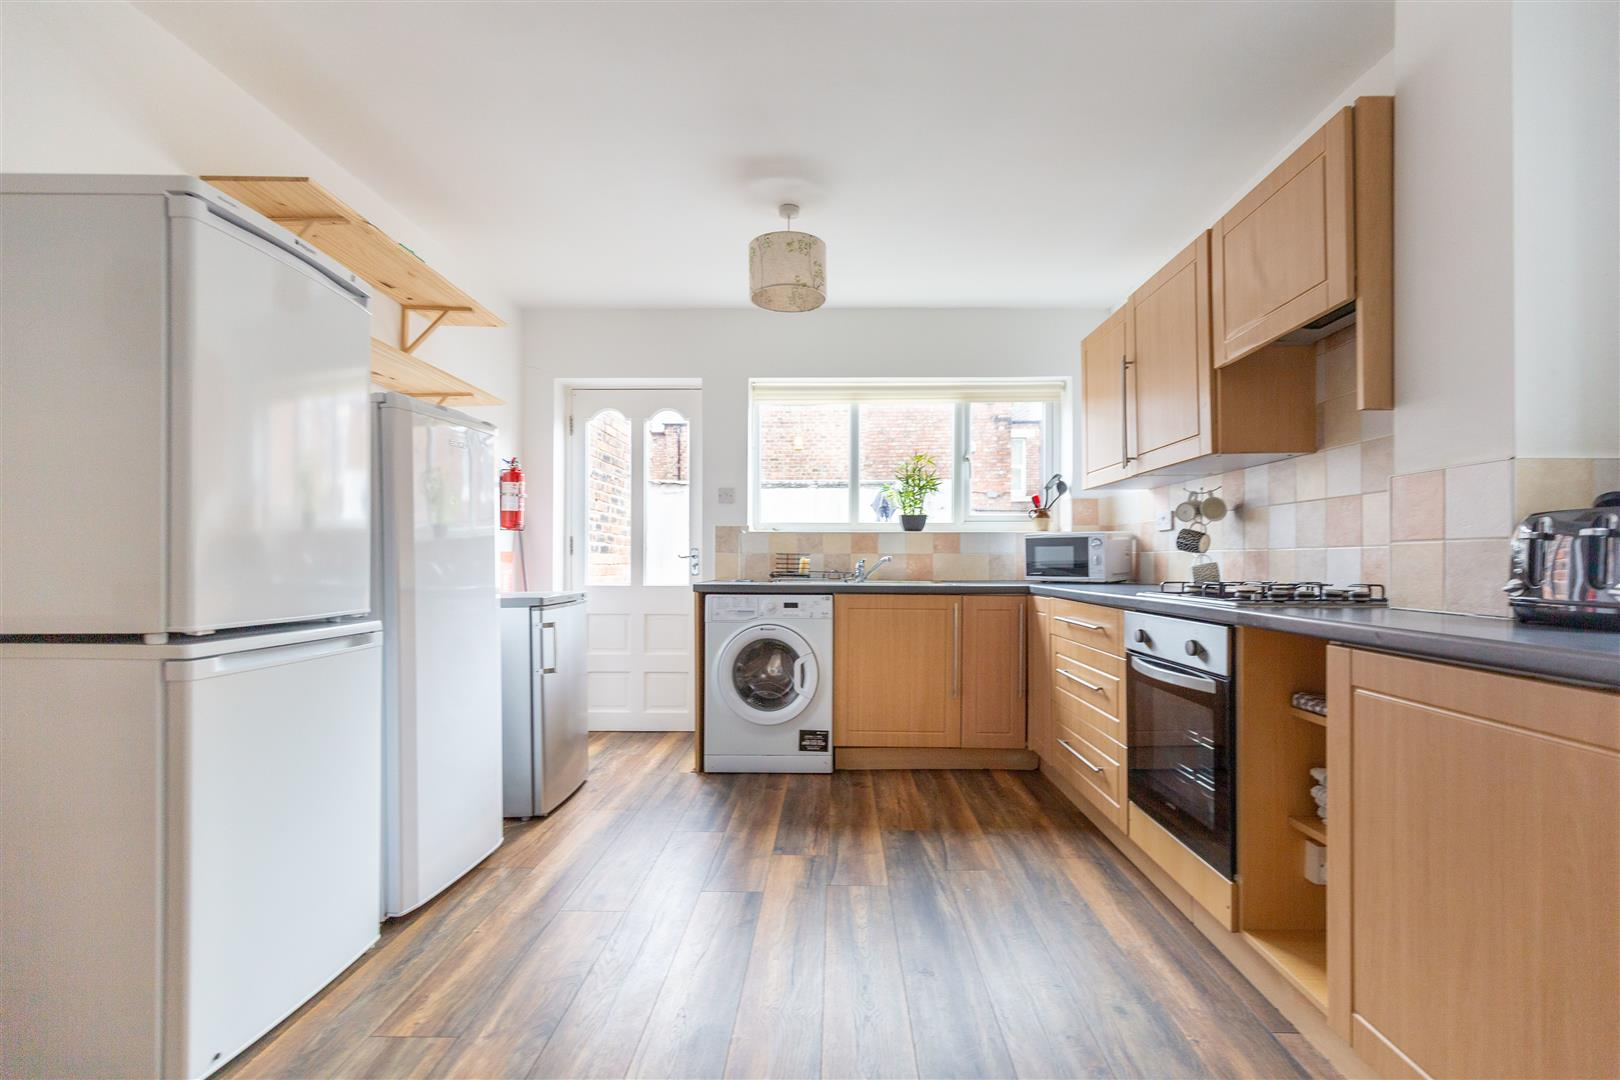 6 bed terraced house to rent in Newcastle Upon Tyne, NE6 5LR  - Property Image 5